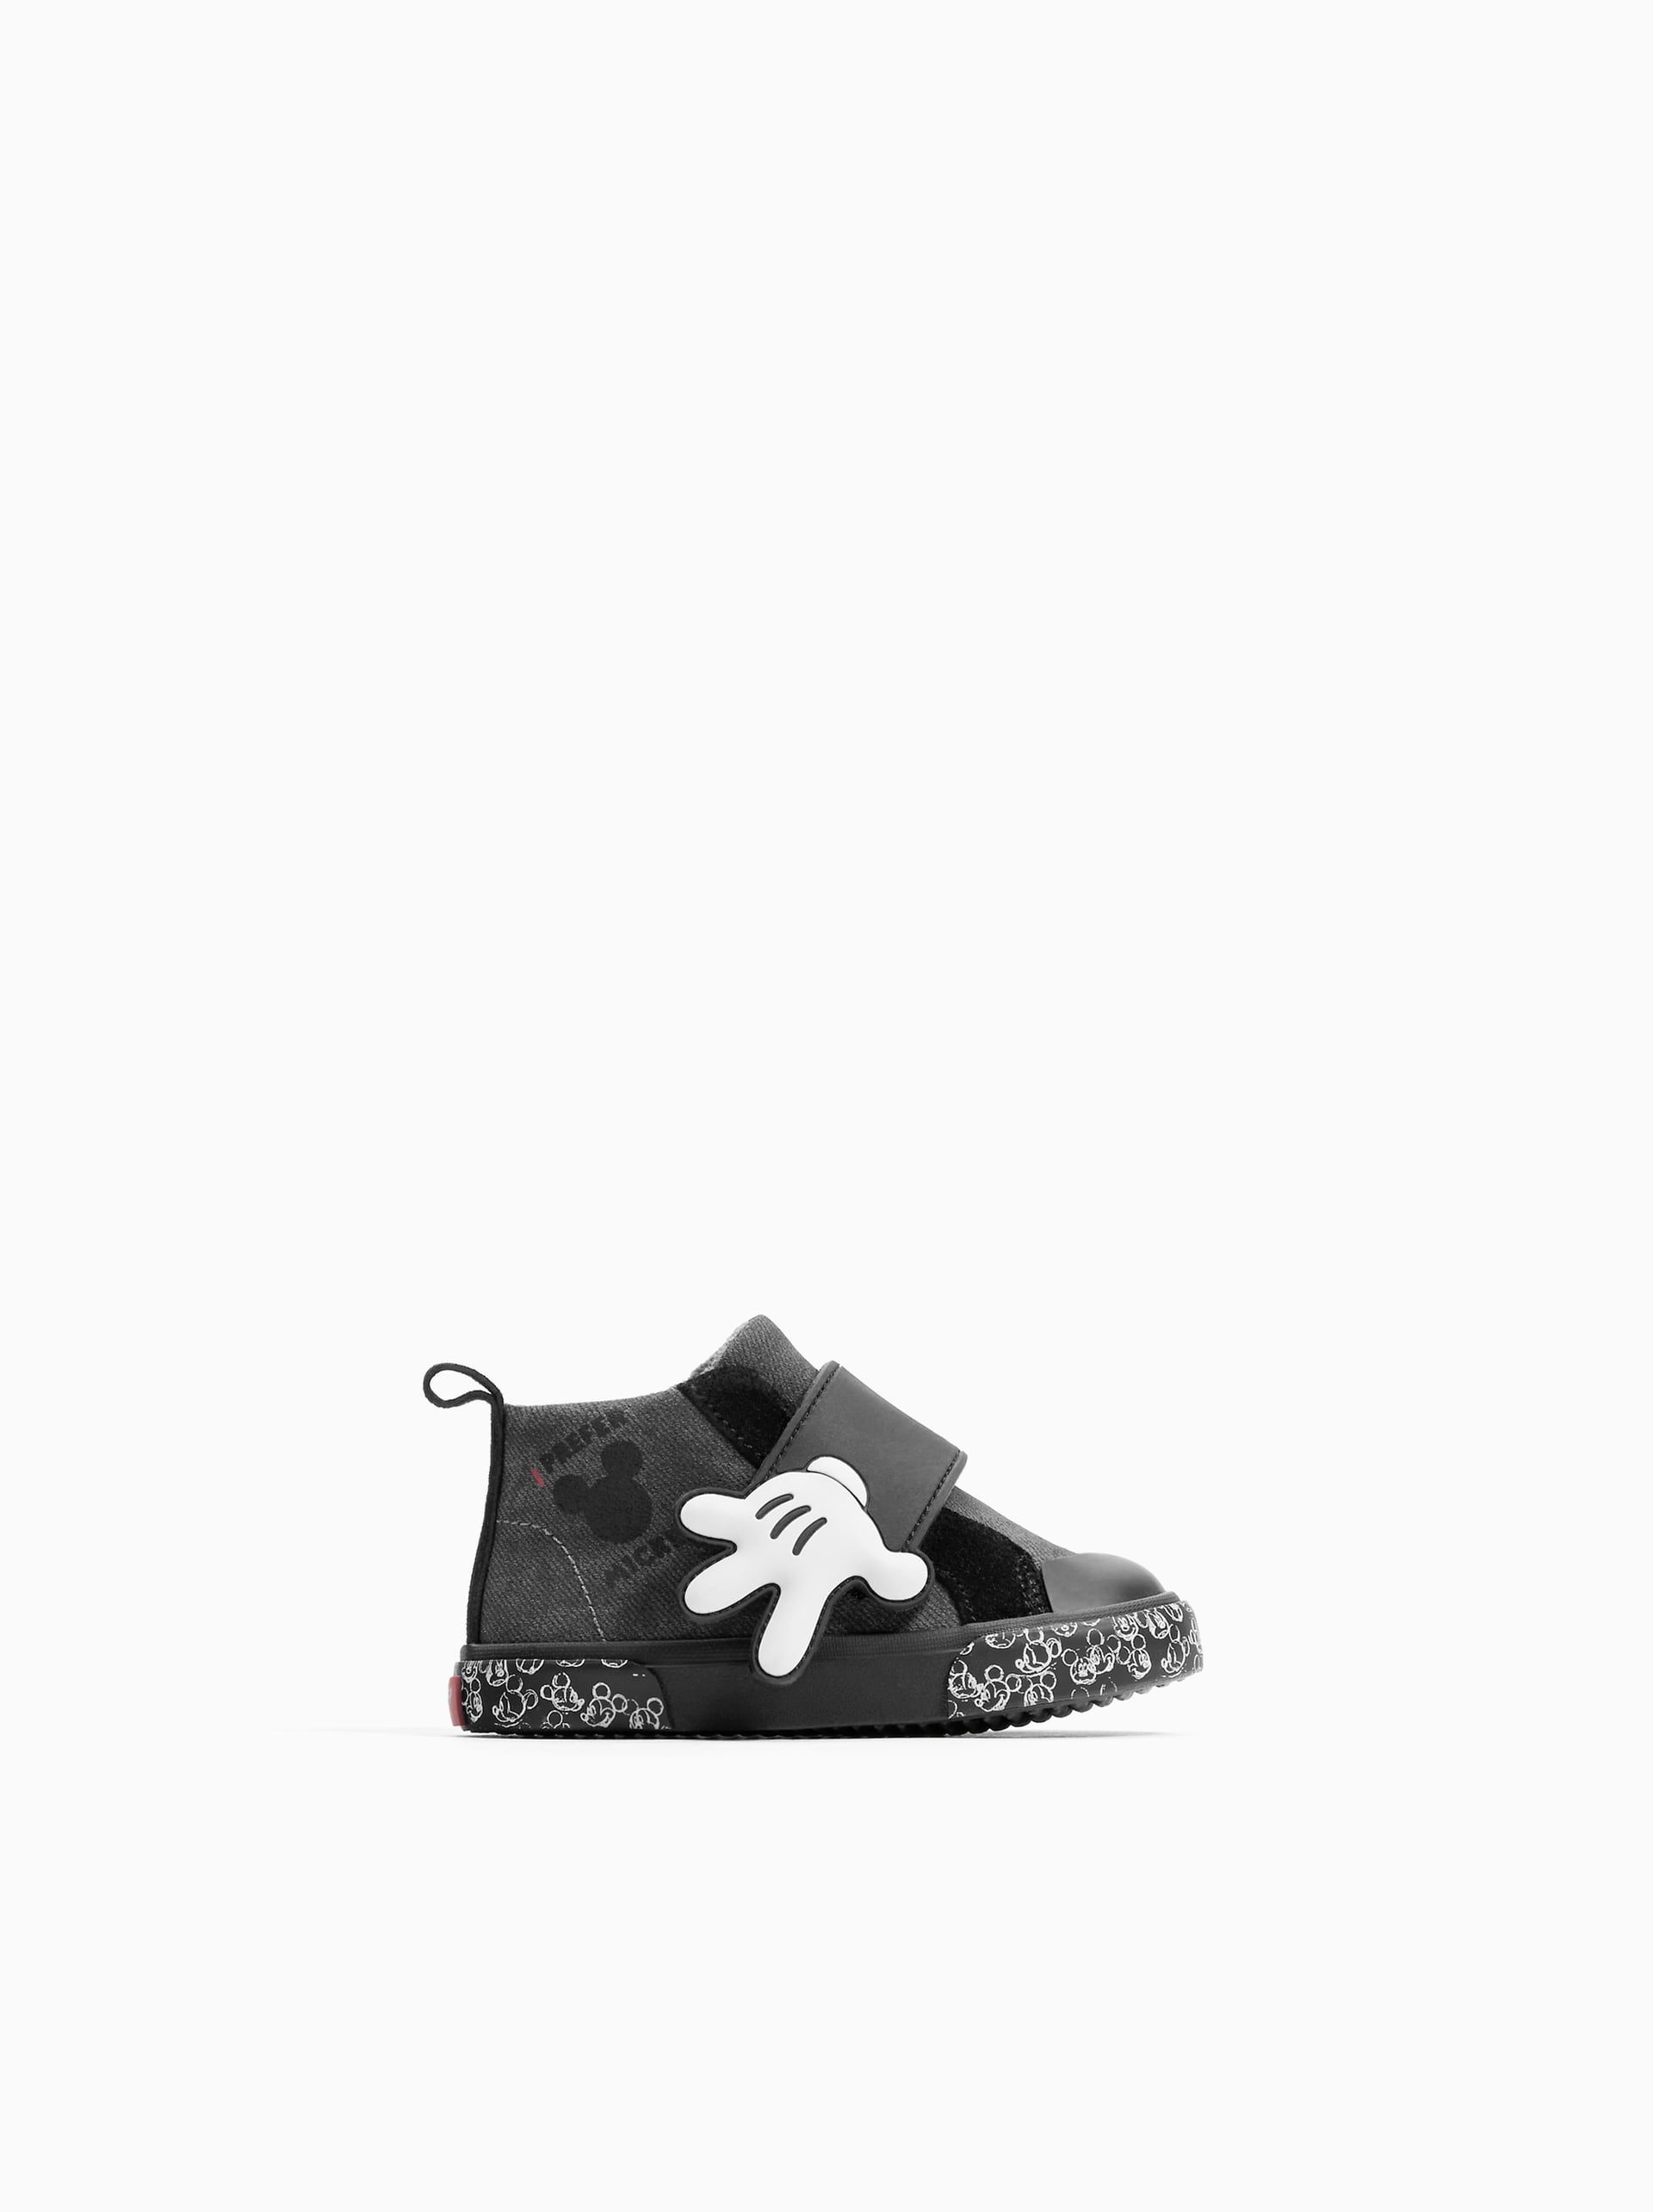 381c5decb0 Image 1 of DISNEY® HIGH TOPS from Zara | Peter's Christmas wish list ...